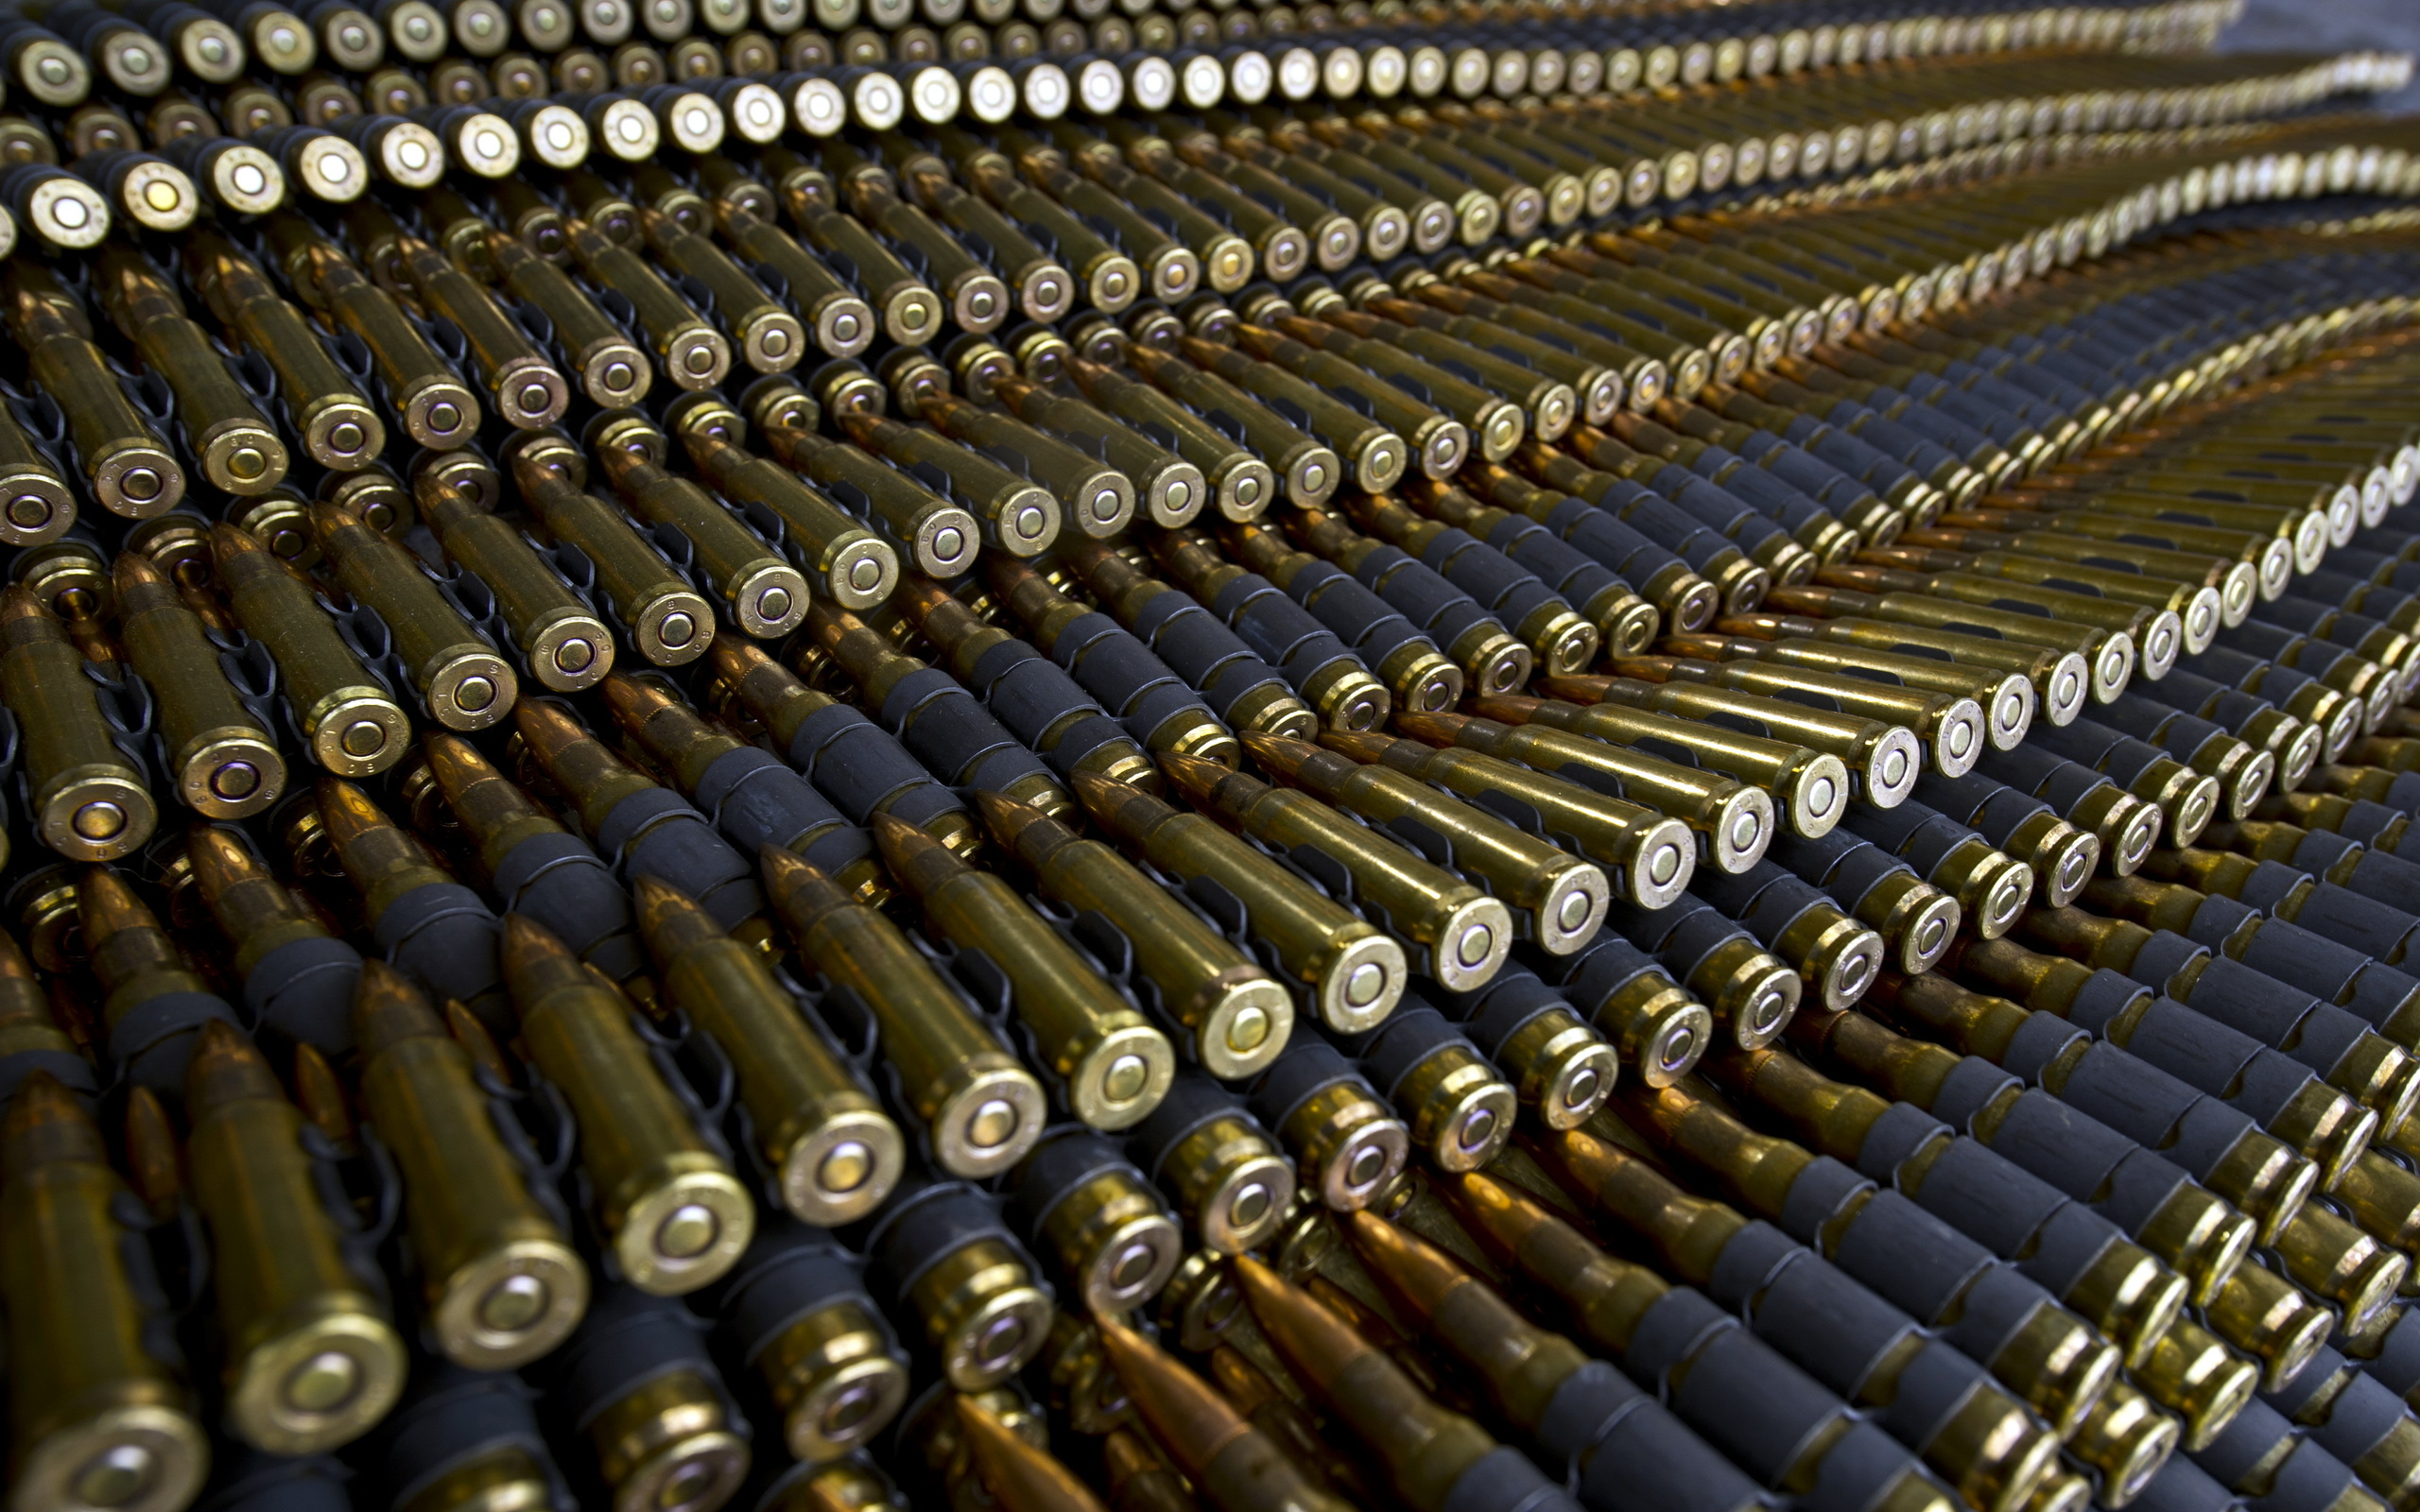 Gun Ammo Wallpaper Ammunition Weapons Close-up